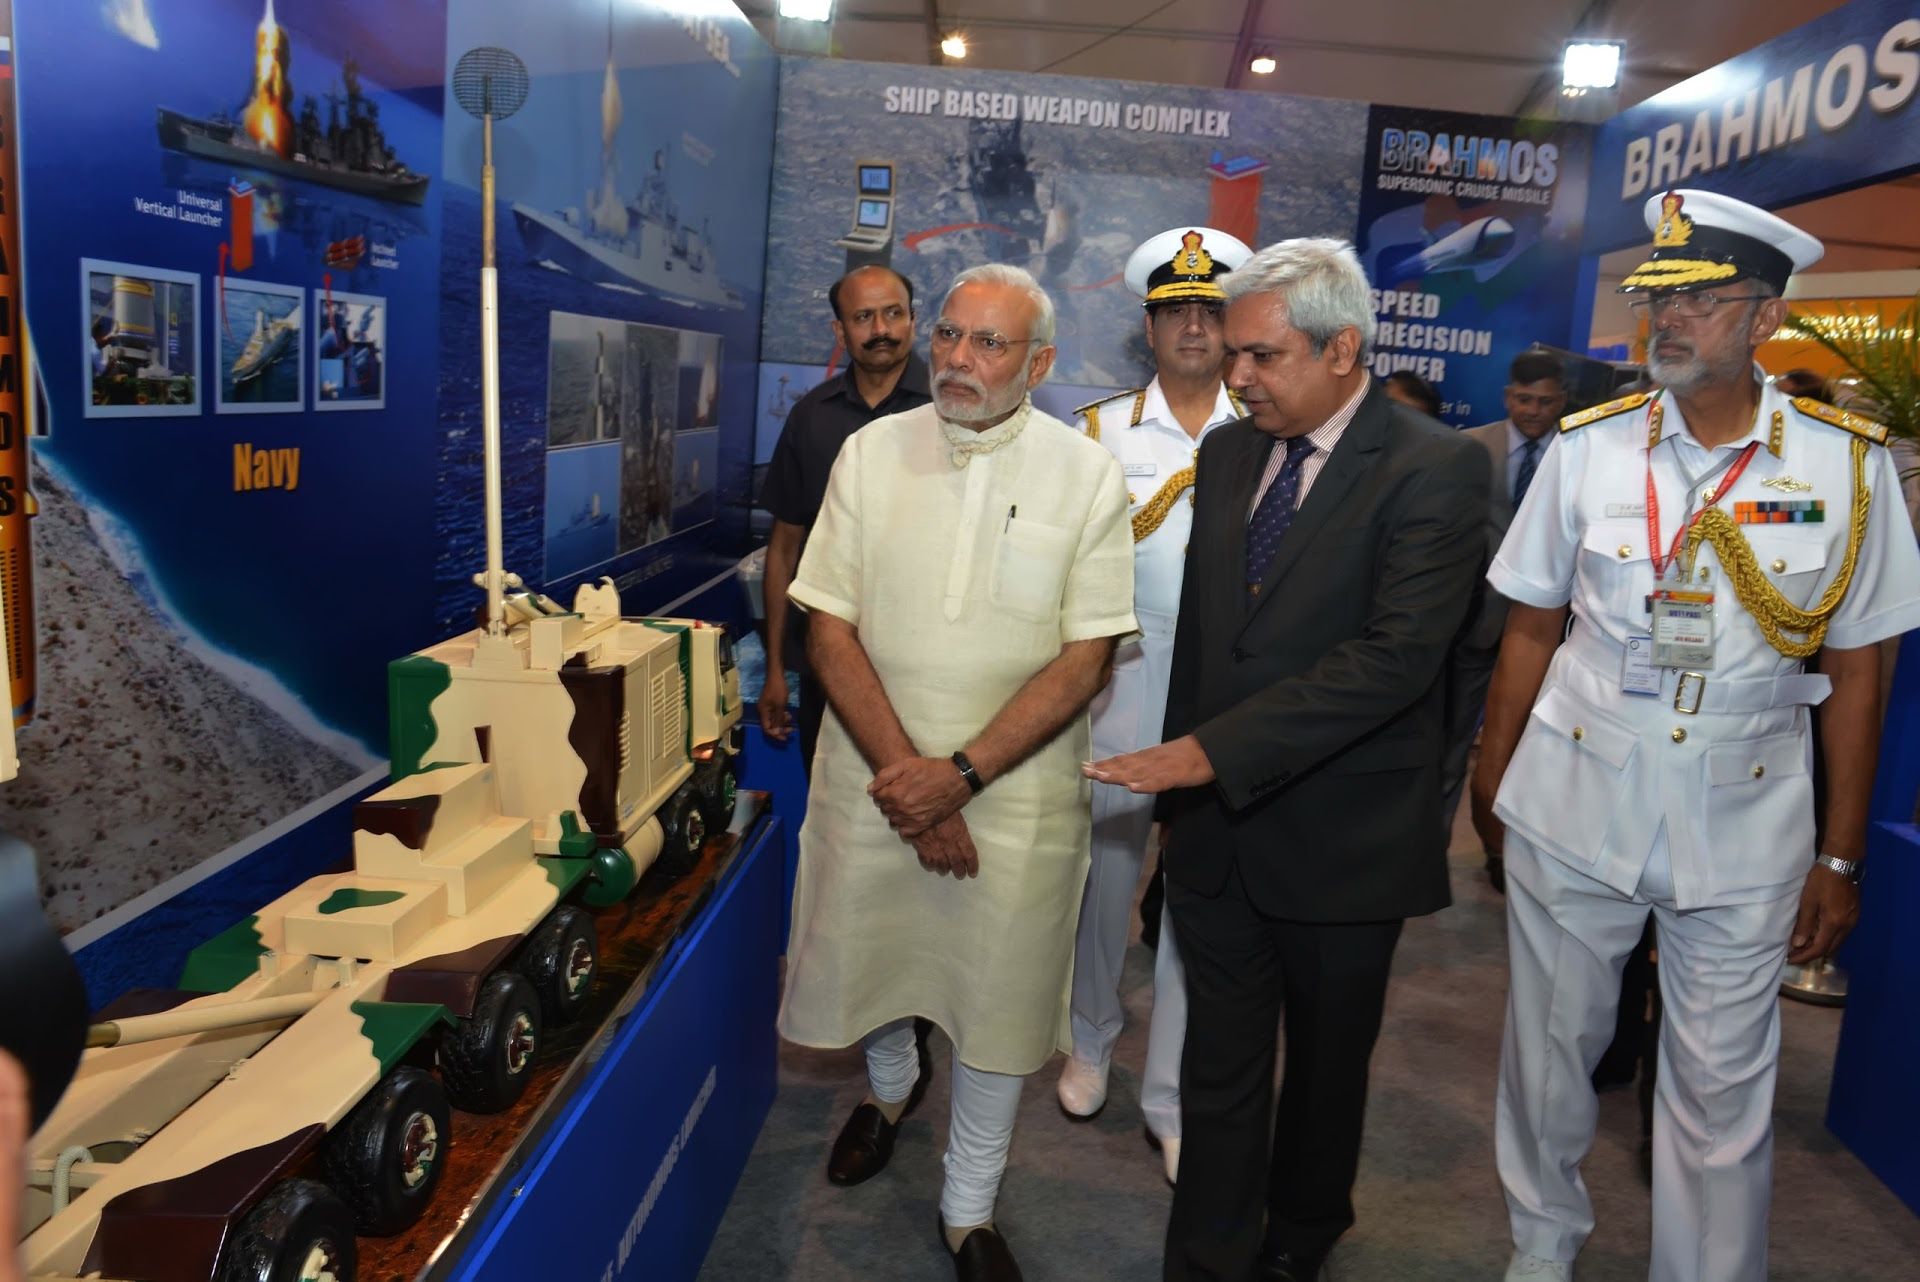 Narendra Modi was briefed about the BrahMos supersonic cruise missile system by Cdr. Ashotoosh Mehra (C).